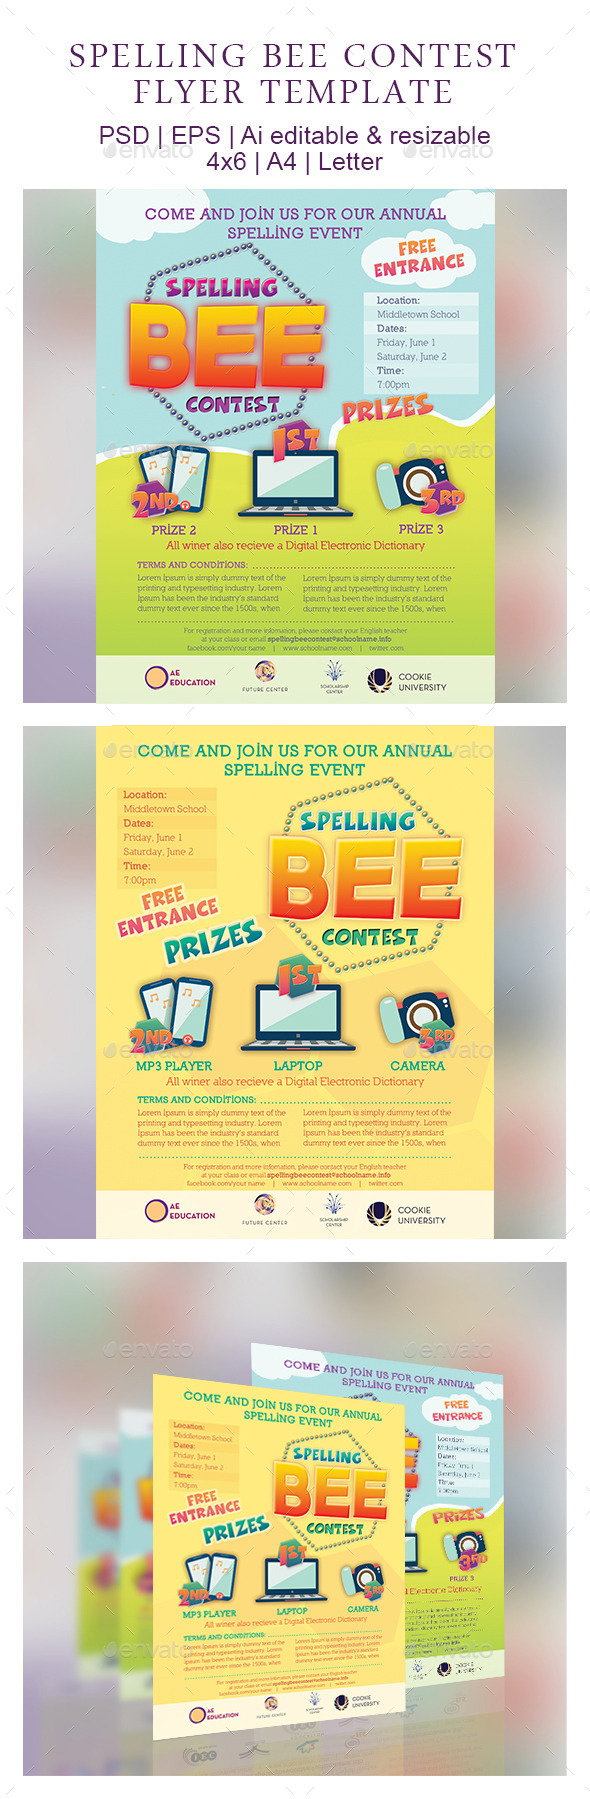 Spelling Bee Contest Flyer Template  Flyer Template Bees And